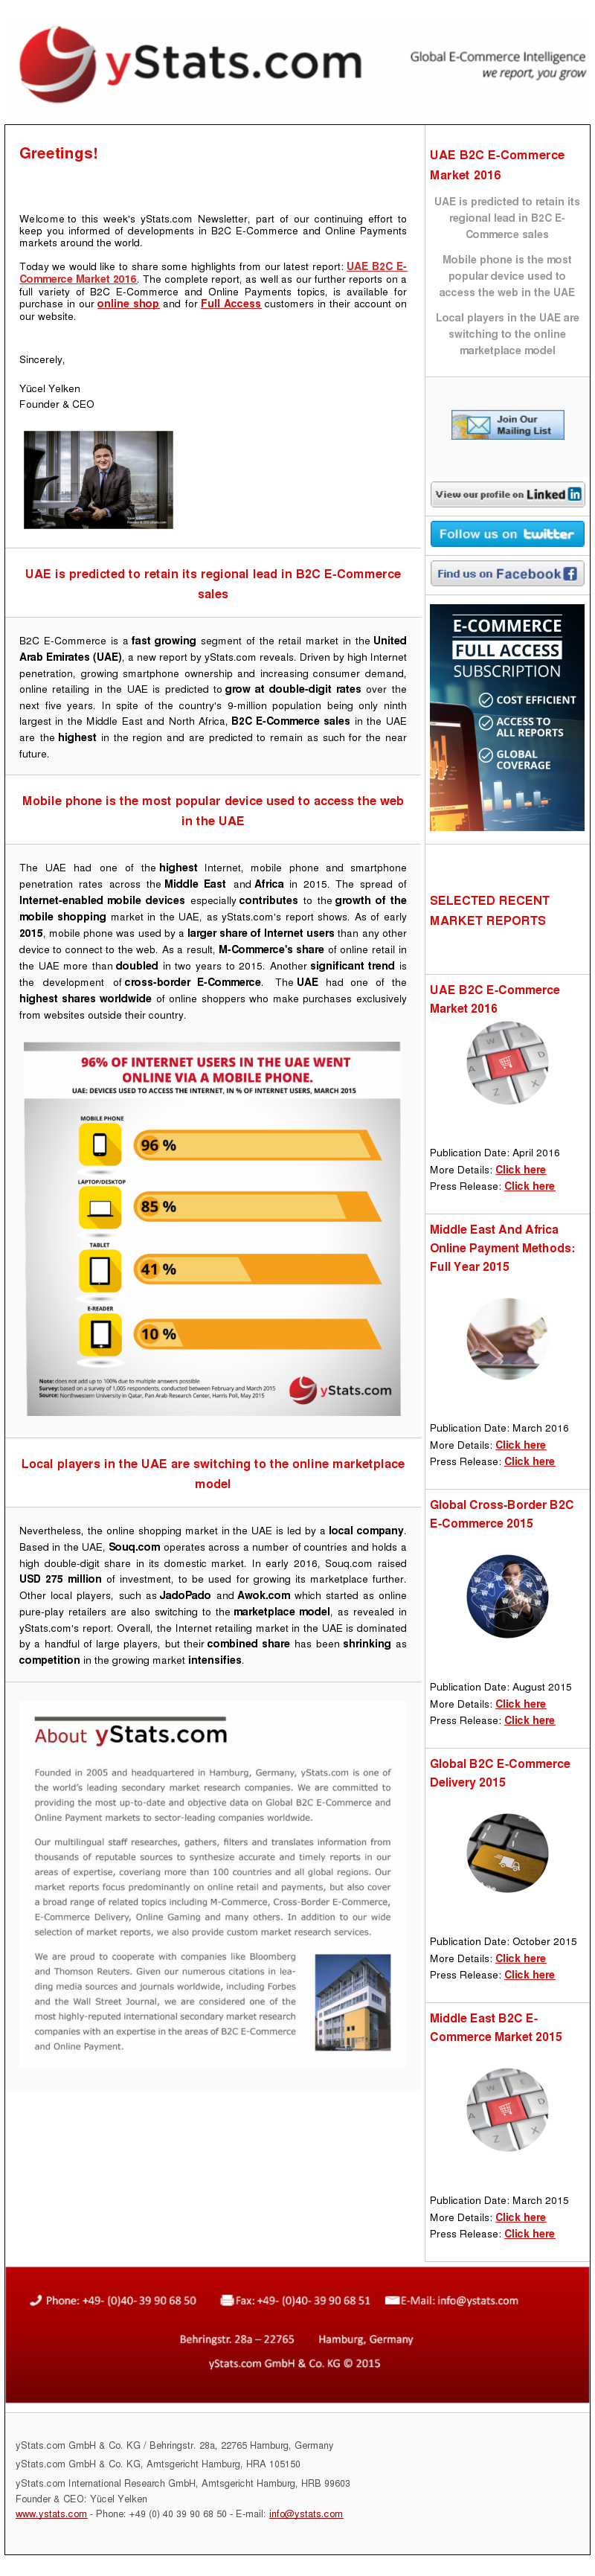 yStats.com Newsletter B2C E-Commerce UAE , UAE B2C E-Commerce Market 2016 , m-commerce , cross-border ecommerce , United Arab Emirates , online retail growth , JadoPado , Awok.com , Souq.com , online shopper penetration rate , market size , online shoppers , mobile shopping , online retail sales , ecommerce sales , internet penetration , emerging market , local ecommerce companies , online shopping , internet retail sales , e-commerce competitors , newsletter , local ecommerce players , 2016 B2C E-Commerce is a fast growing segment of the retail market in the United Arab Emirates (UAE), a new report by yStats.com reveals. Driven by high Internet penetration, growing smartphone ownership and increasing consumer demand, online retailing in the UAE is predicted to grow at double-digit rates over the next five years. In spite of the country's 9-million population being only ninth largest in the Middle East and North Africa, B2C E-Commerce sales in the UAE are the highest in the region and are predicted to remain as such for the near future.  The UAE had one of the highest Internet, mobile phone and smartphone penetration rates across the Middle East and Africa in 2015. The spread of the Internet-enabled mobile devices especially contributes to the growth of the mobile shopping market in the UAE, as yStats.com's report shows. As of early 2015, mobile phone was used by a larger share of Internet users than any other device to connect to the web. As a result, M-Commerce's share of online retail in the UAE more than doubled in two years to 2015. Another significant trend is the development of cross-border E-Commerce. The UAE had one of the highest shares worldwide of online shoppers who make purchases exclusively from websites outside their country.  Nevertheless, the online shopping market in the UAE is led by a local company. Based in the UAE, Souq.com operates across a number of countries and holds a high double-digit share in its domestic market. In early 2016, Souq.com